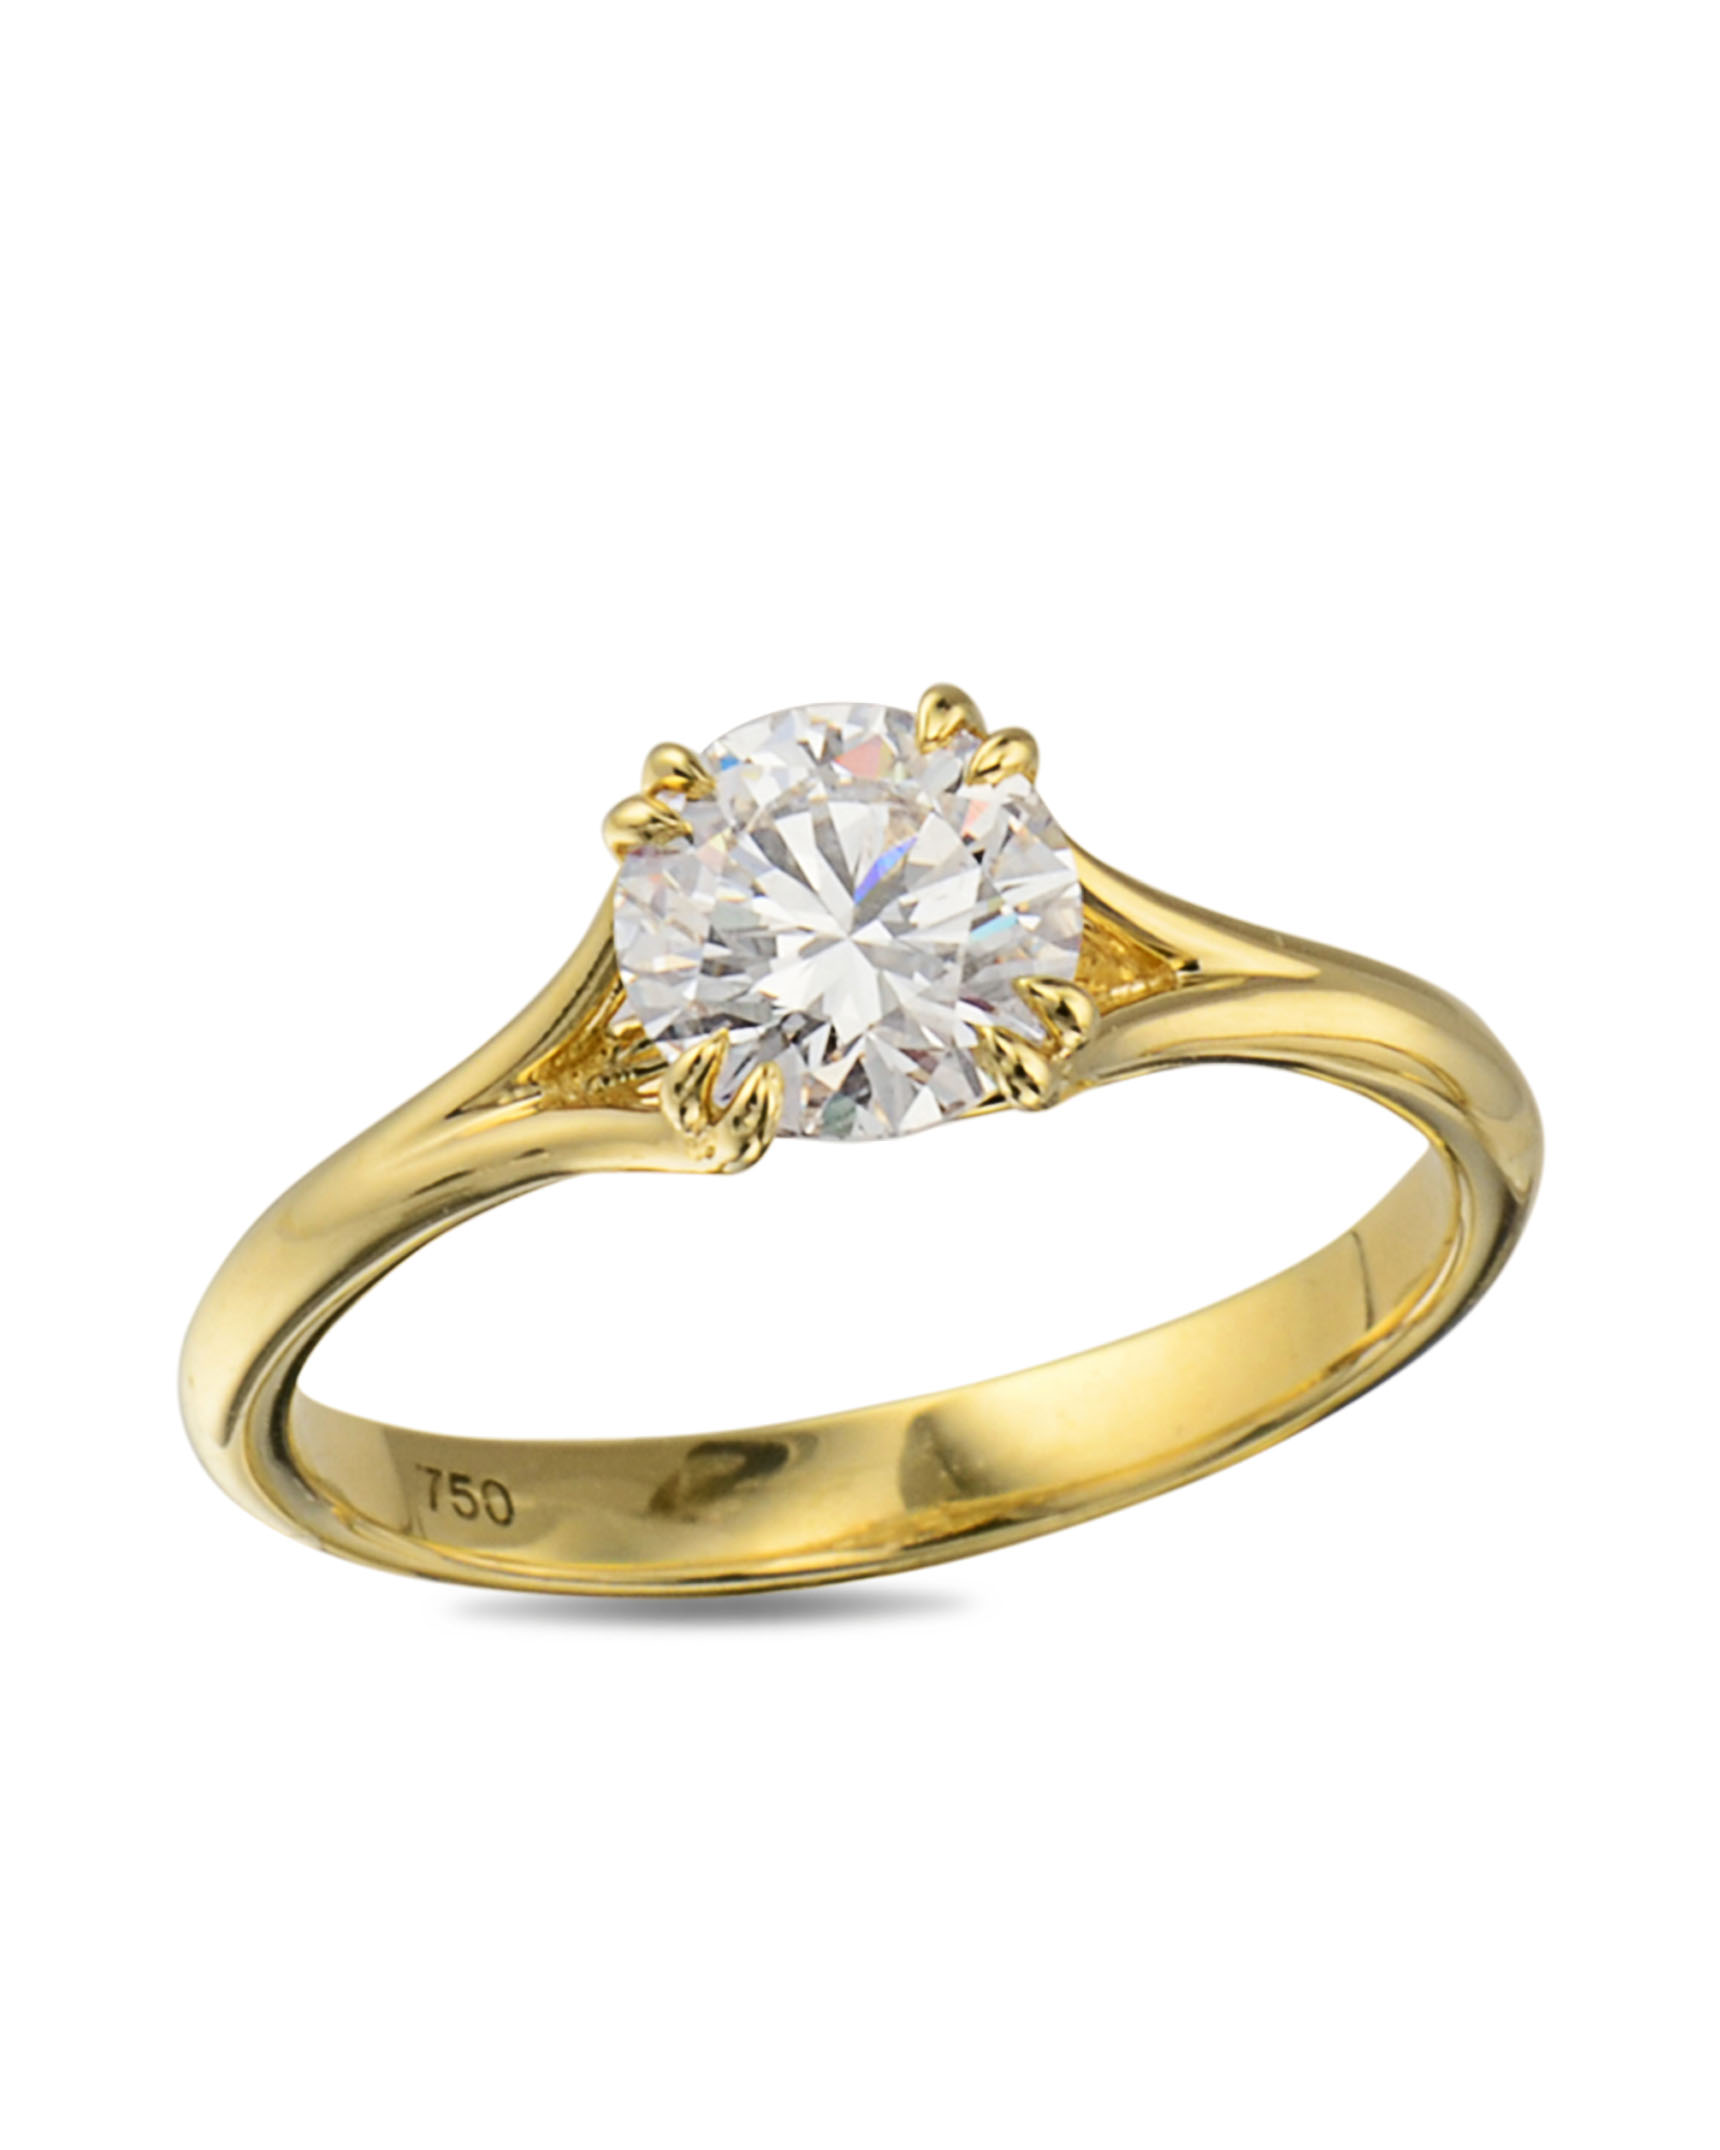 engagement ring gold diamond round cut rings verragio products ct fits